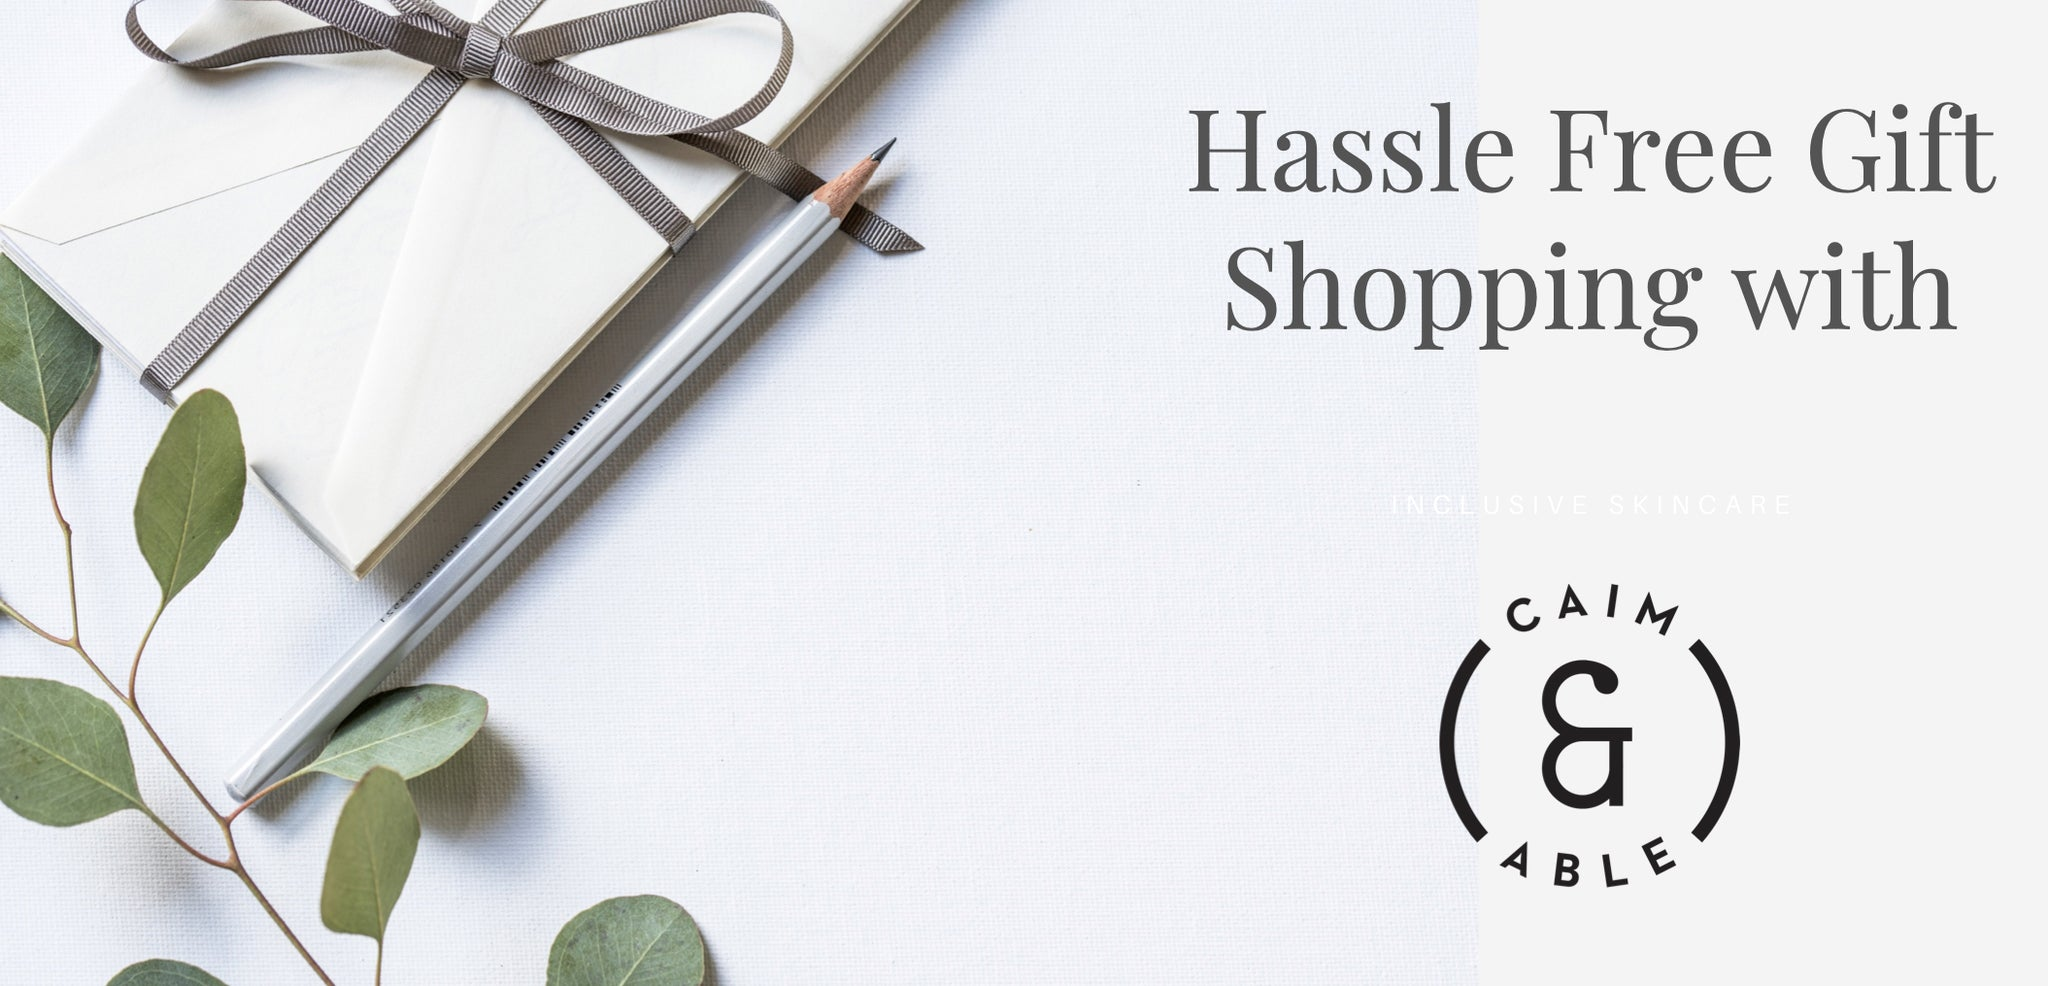 hassle free gift shopping